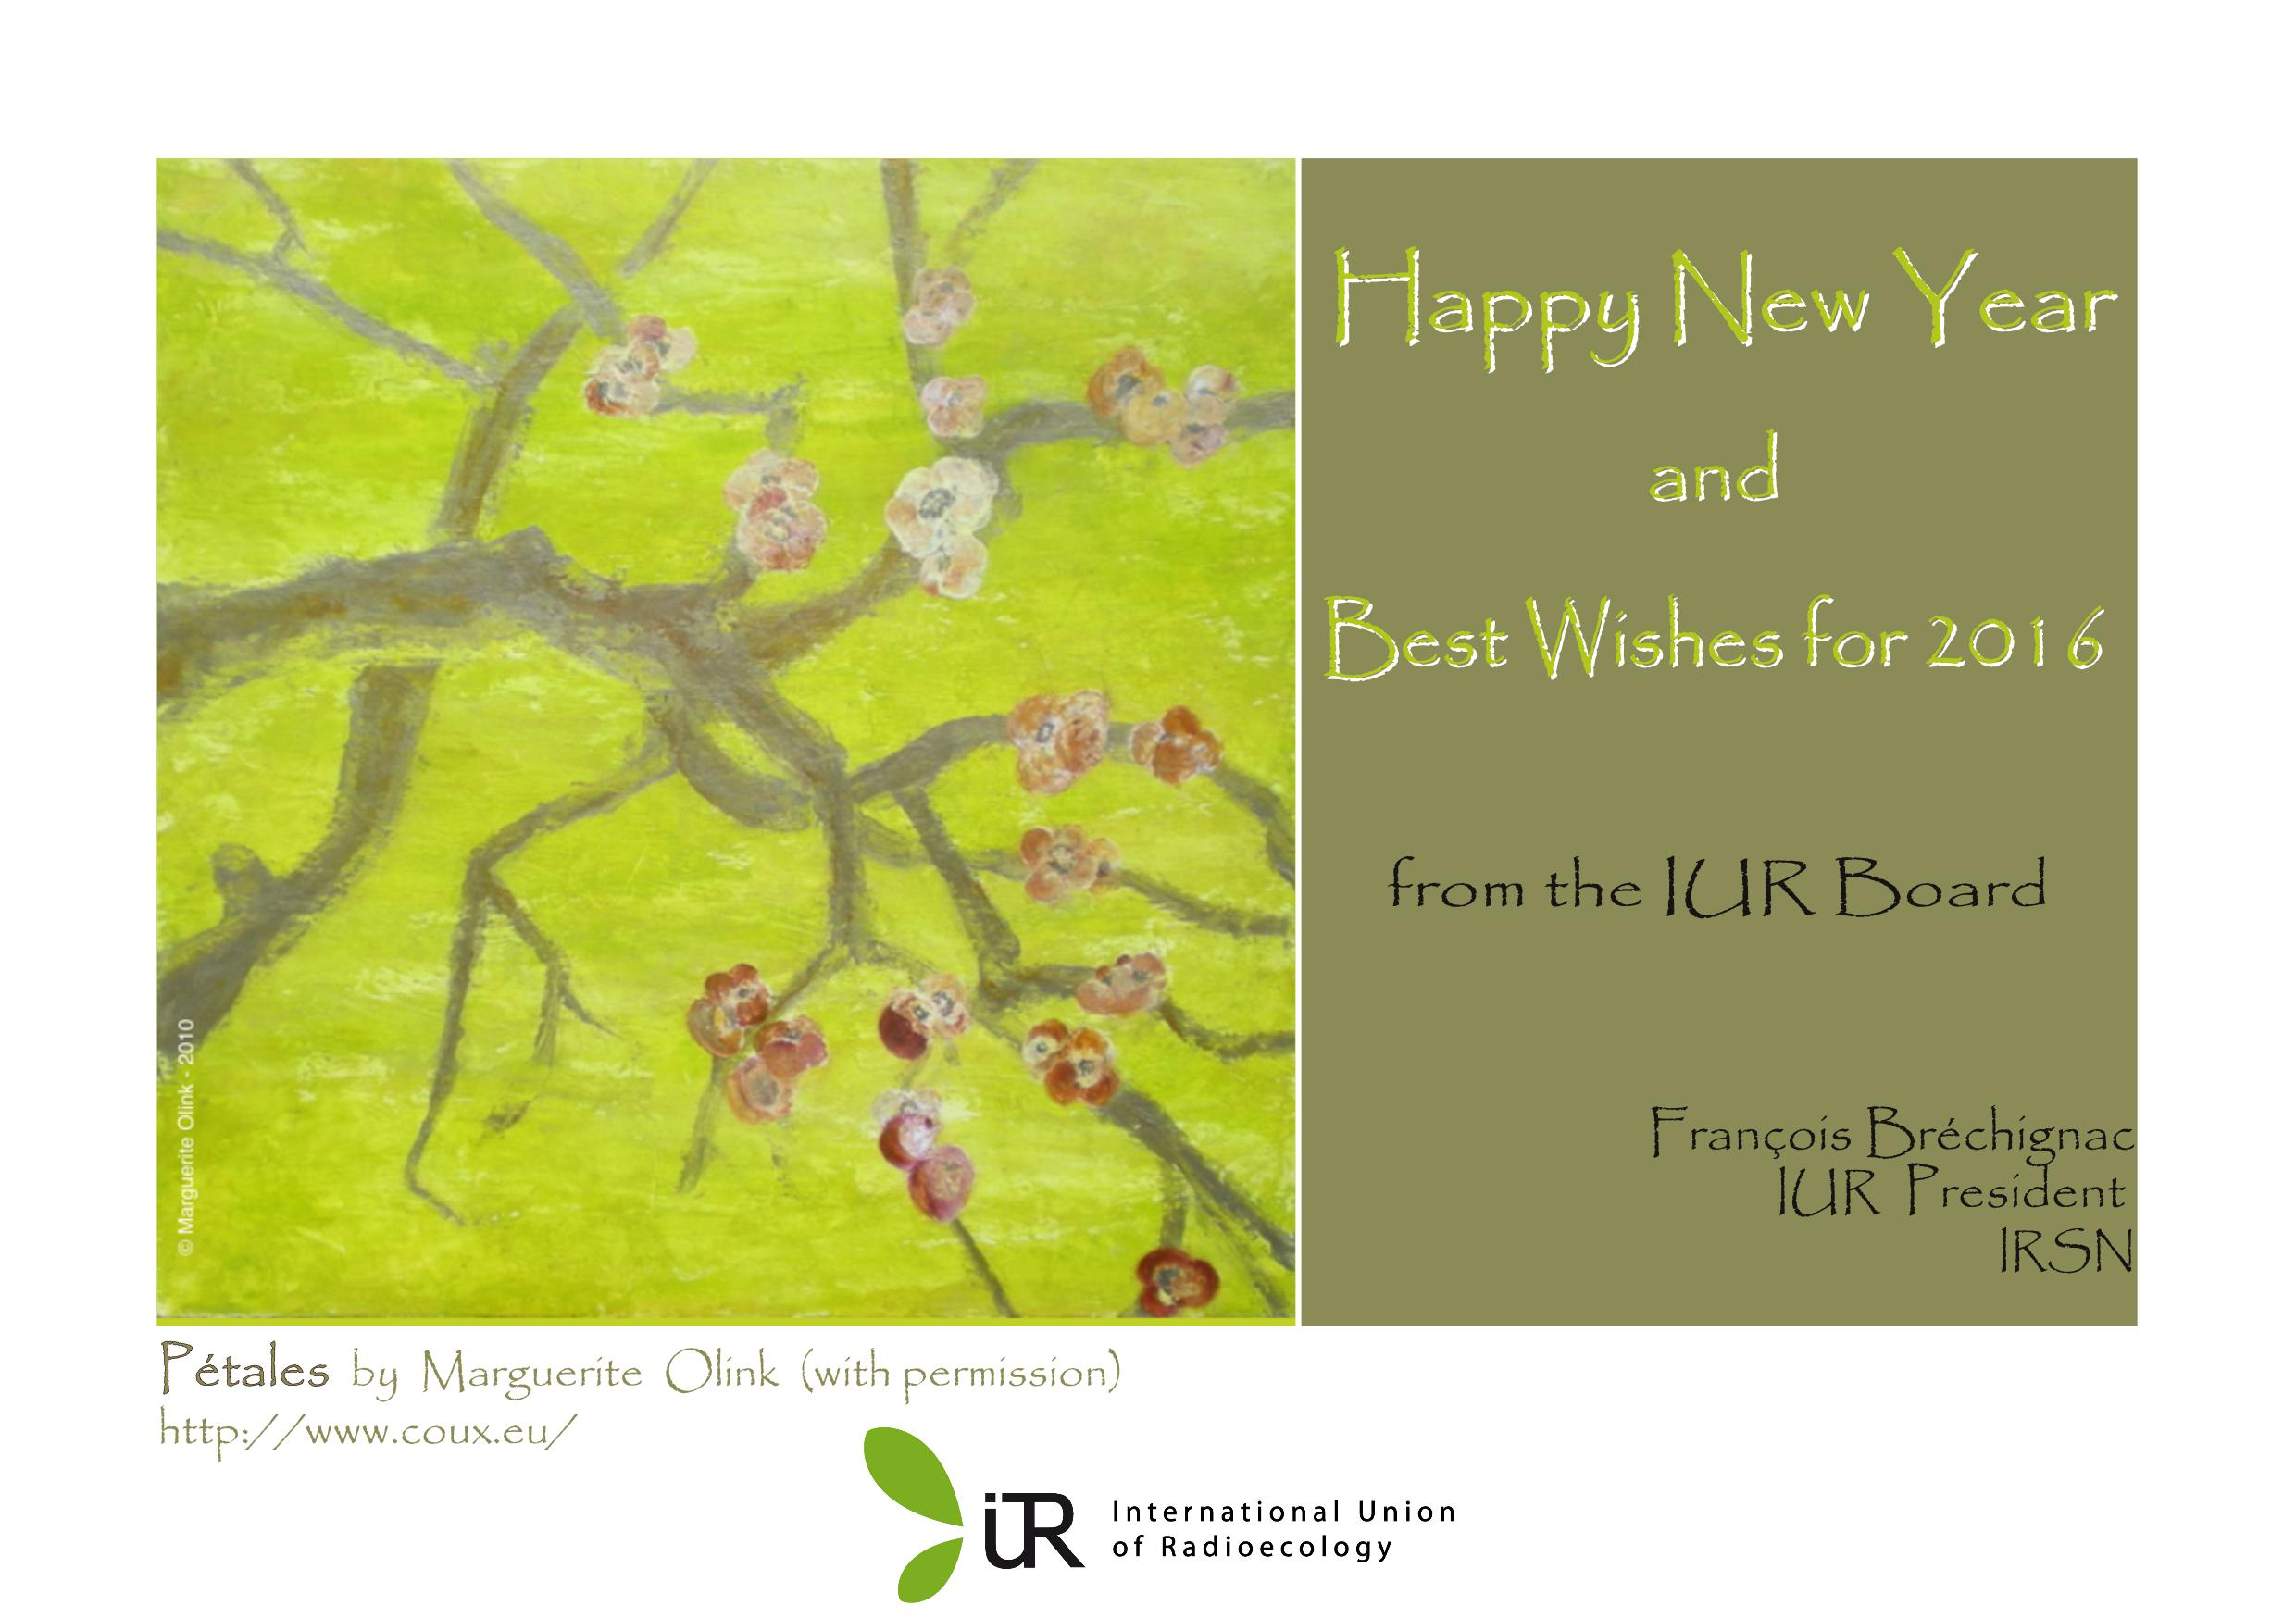 New Year Greetings From The Iur Board Iur News Archives